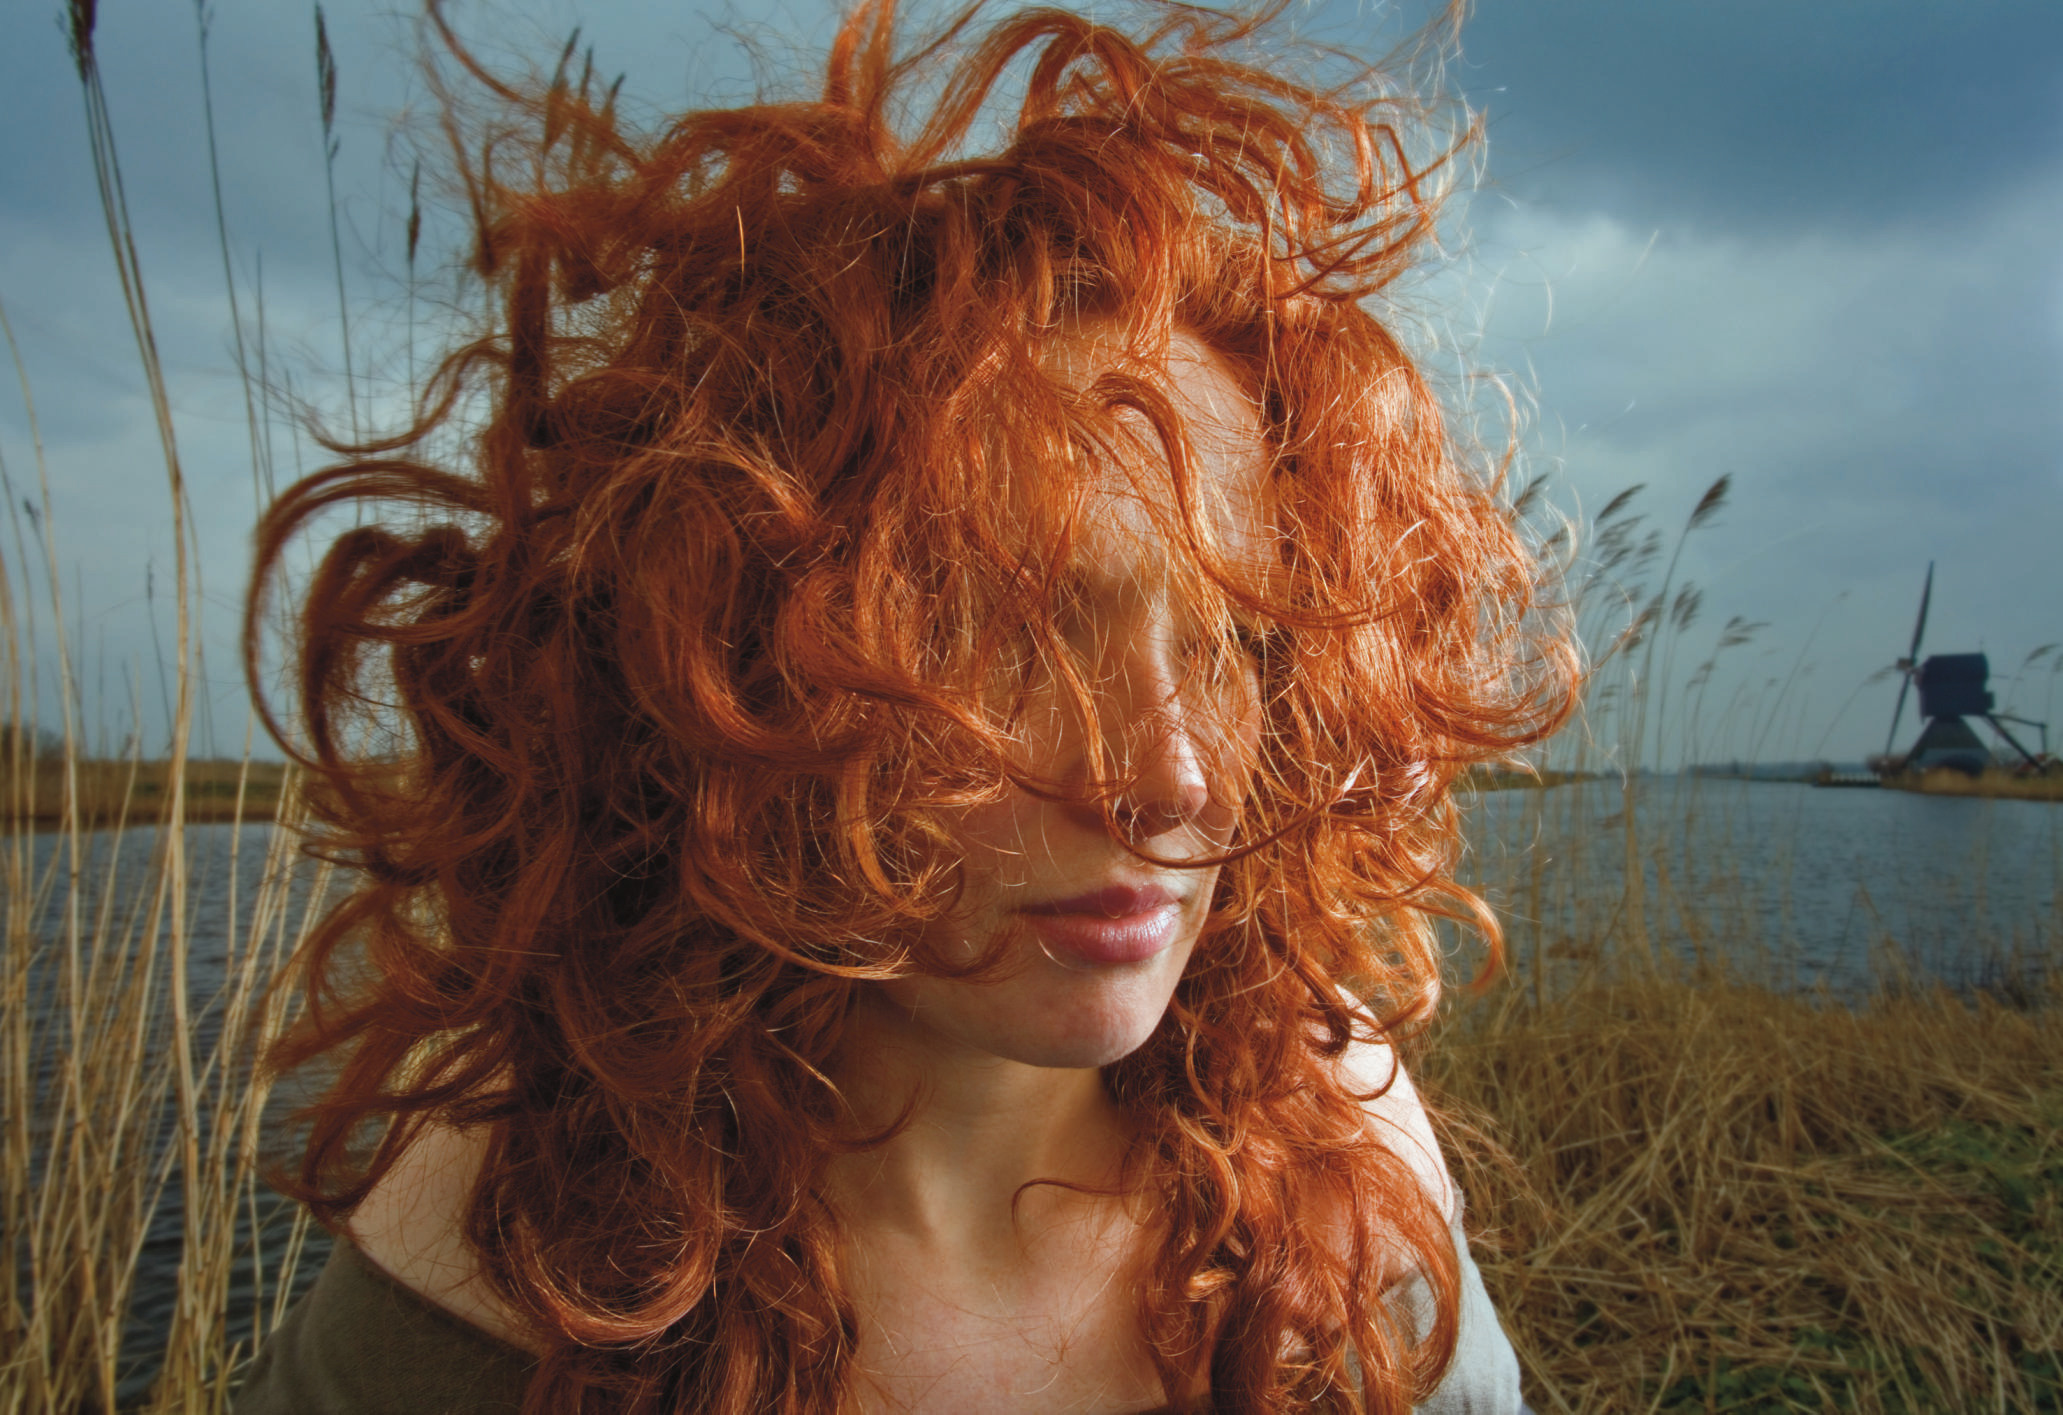 Monica from 'Natural Redheads', 2007